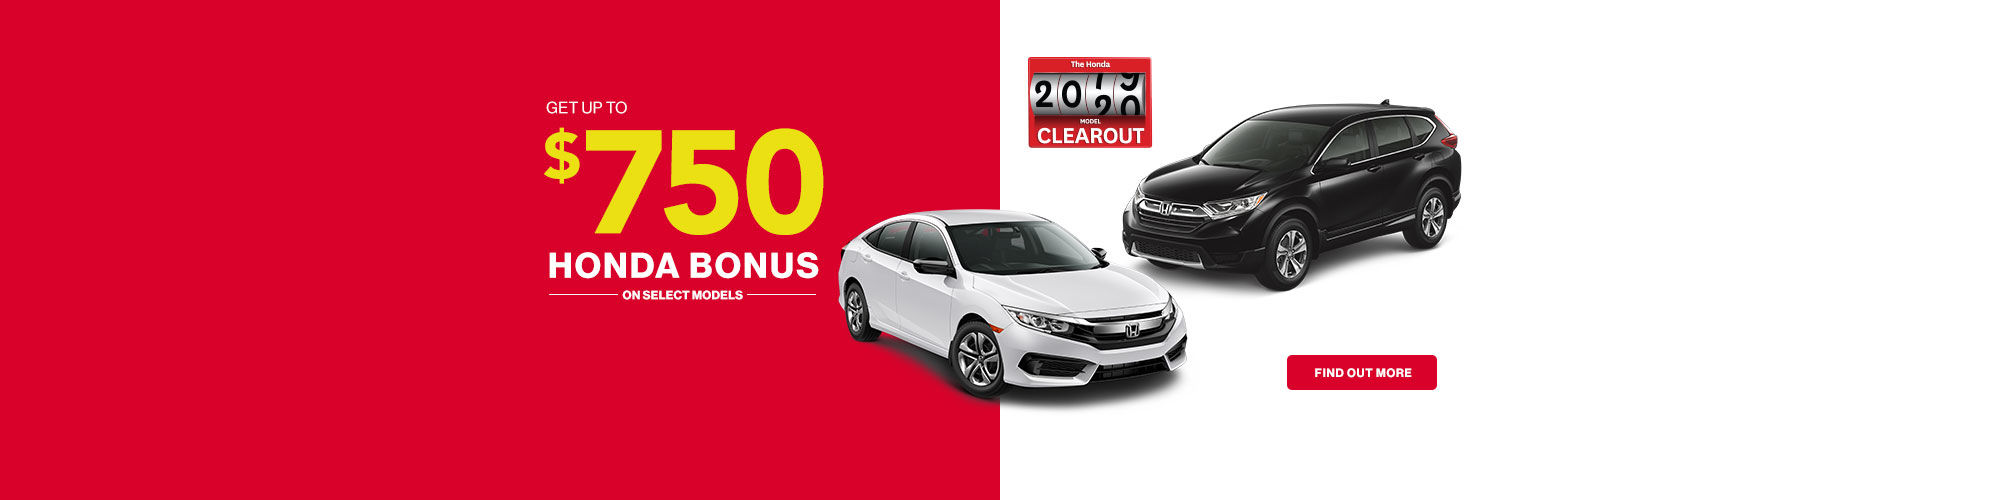 Honda Clearout Sales Event